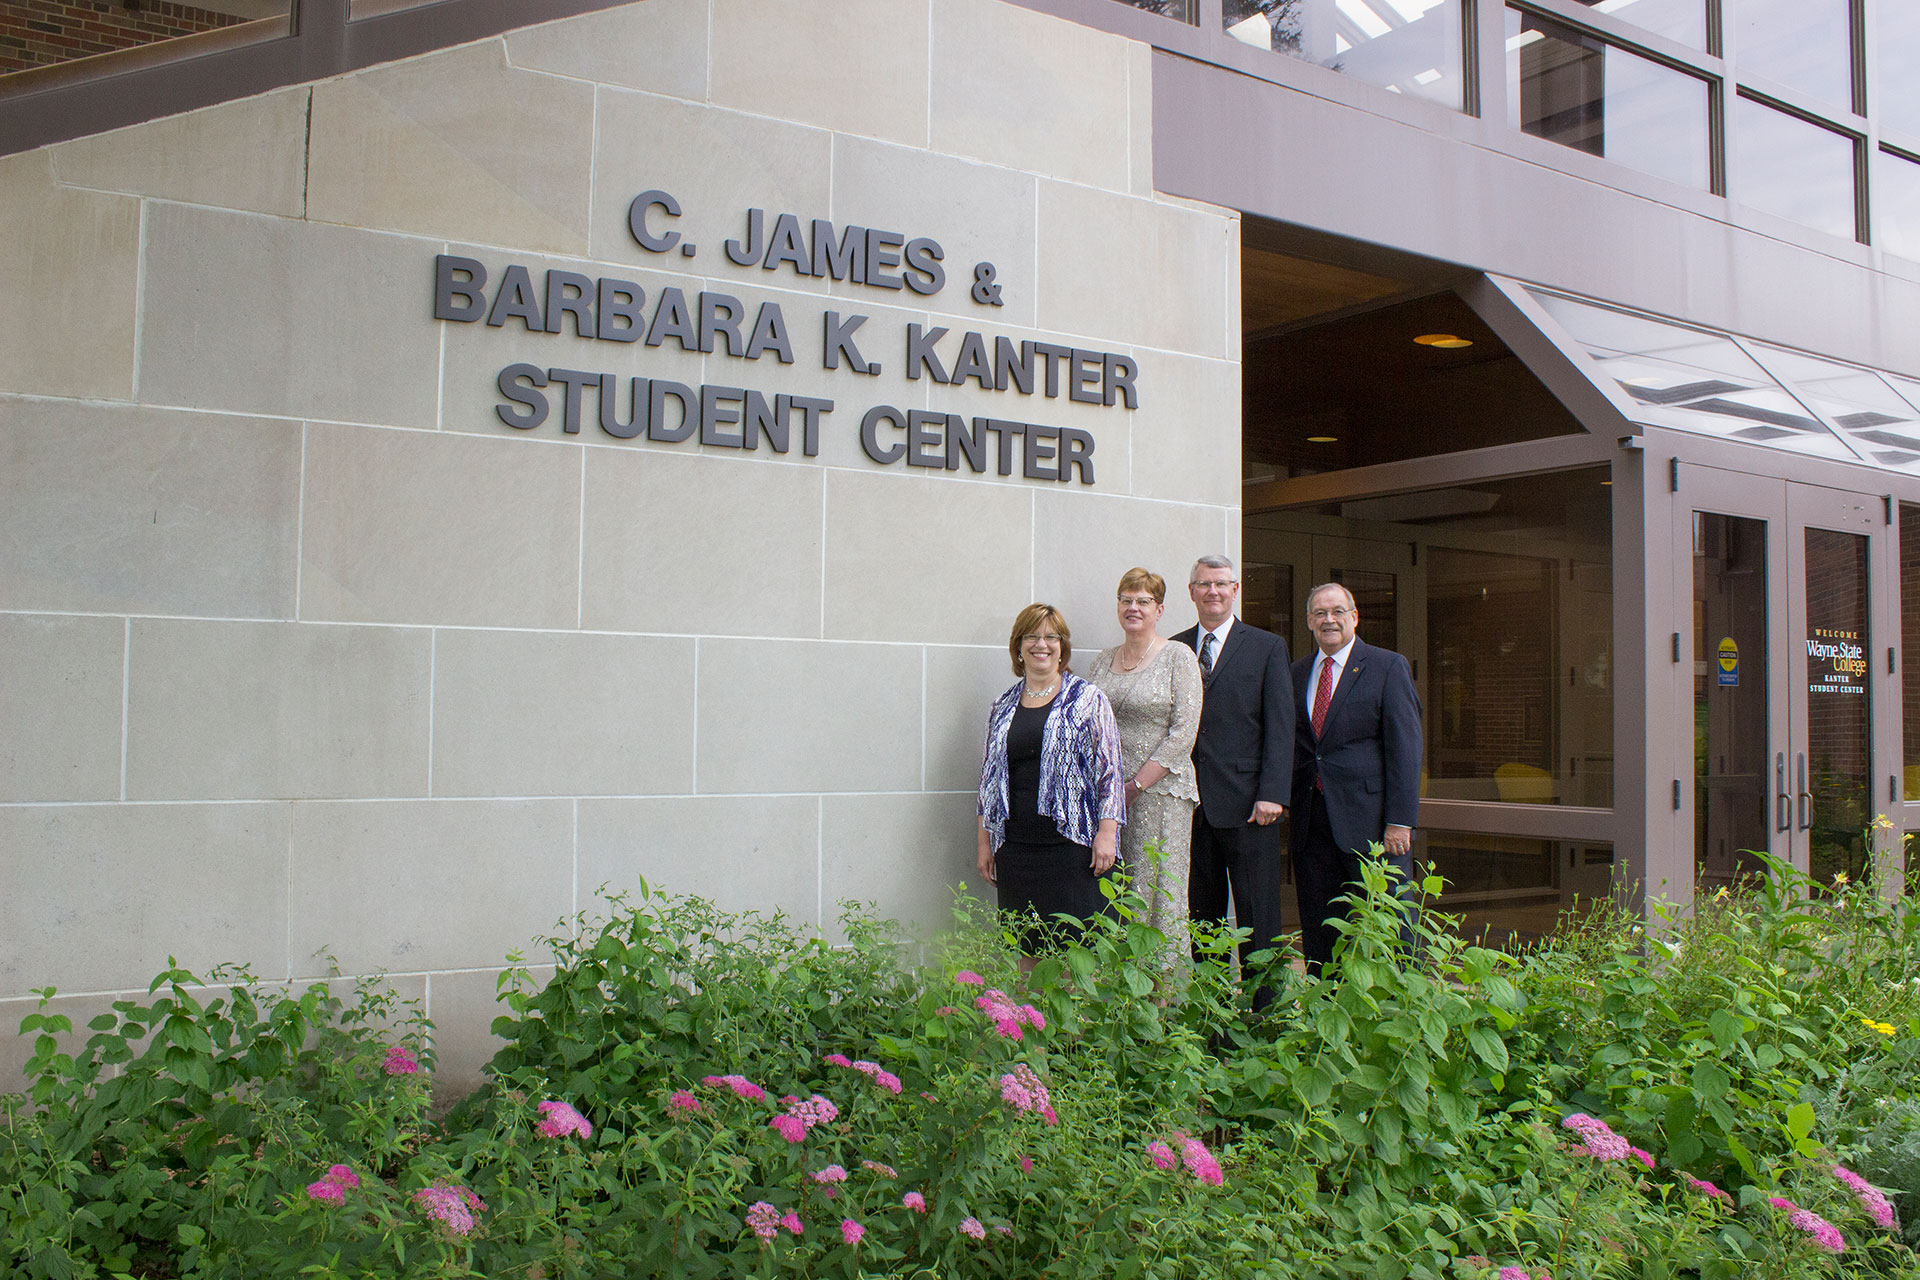 C. James & Barbara K. Kanter Student Center